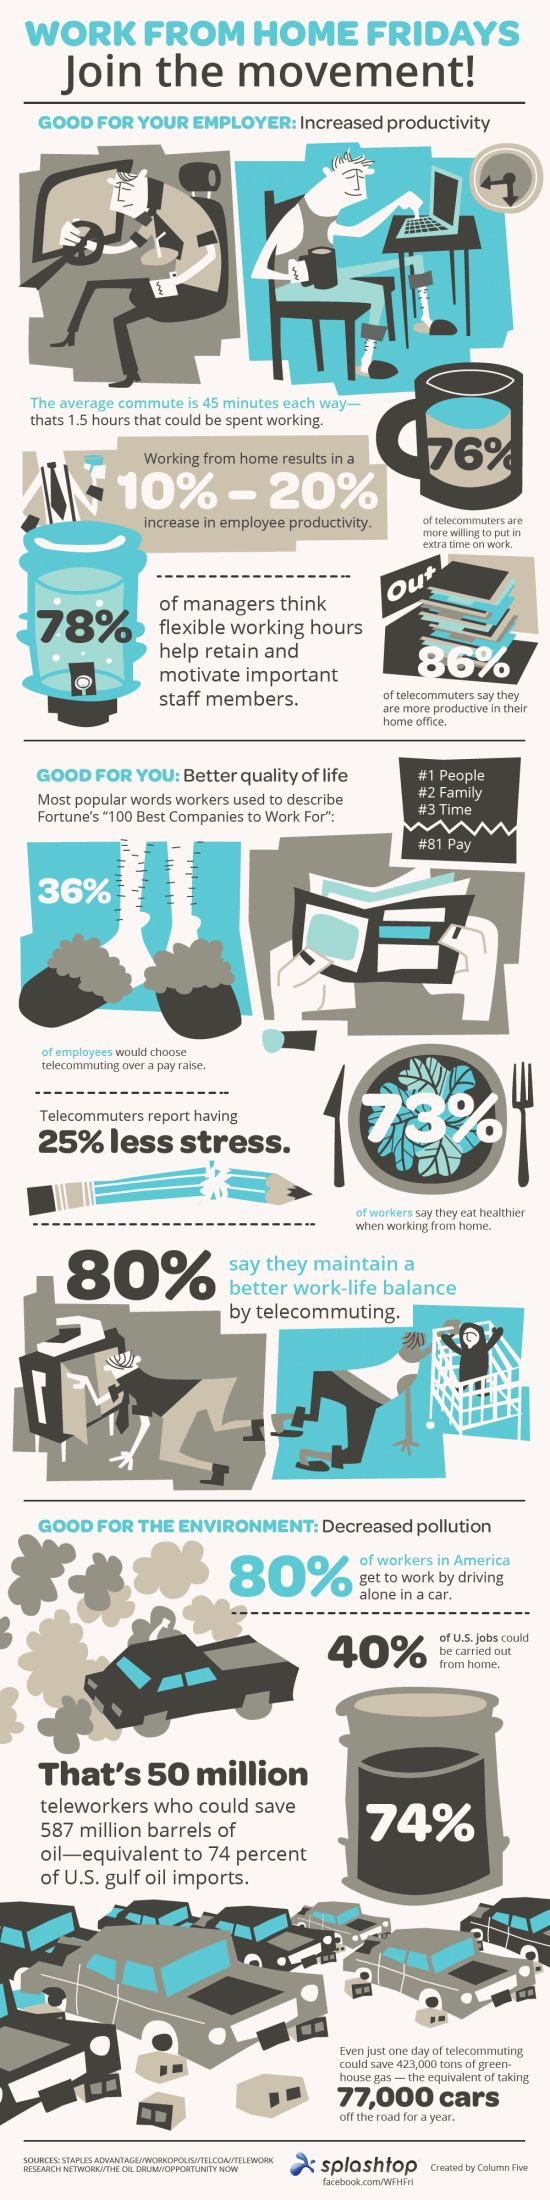 work-from-home-fridays infographic